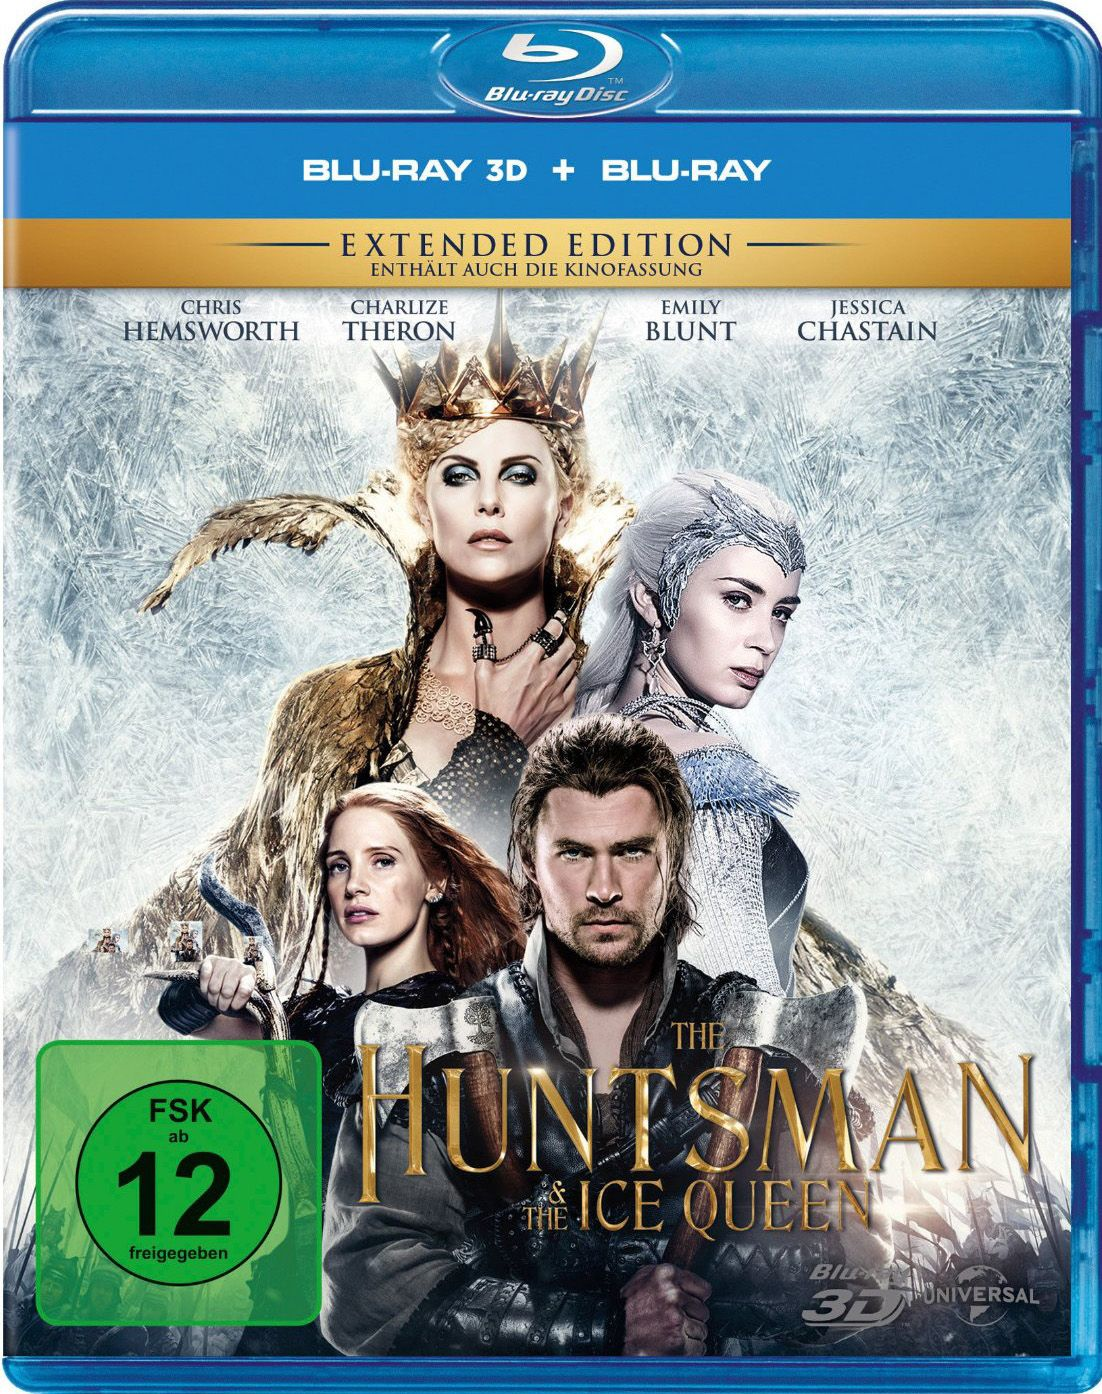 Huntsman & the Ice Queen 3D, The (Kinofassung & Extended Version) (2 Discs) (BLURAY 3D)